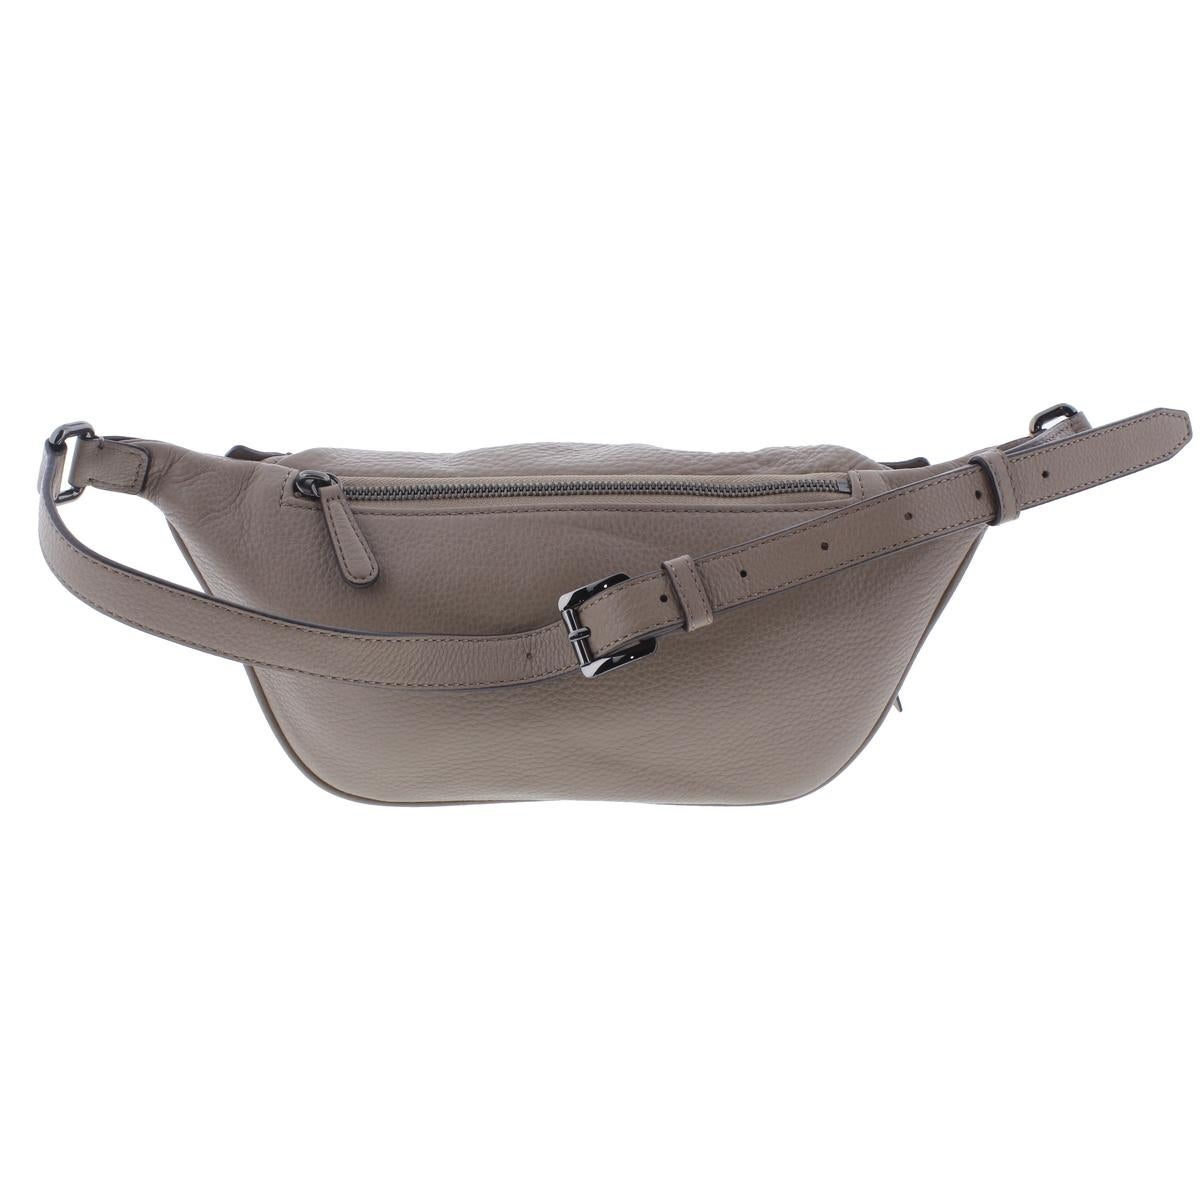 0d5b9c1bf9d9 Shop Michael Kors Womens Rhea Fanny Pack Studded Adjustable - small - Free  Shipping Today - Overstock - 22048097